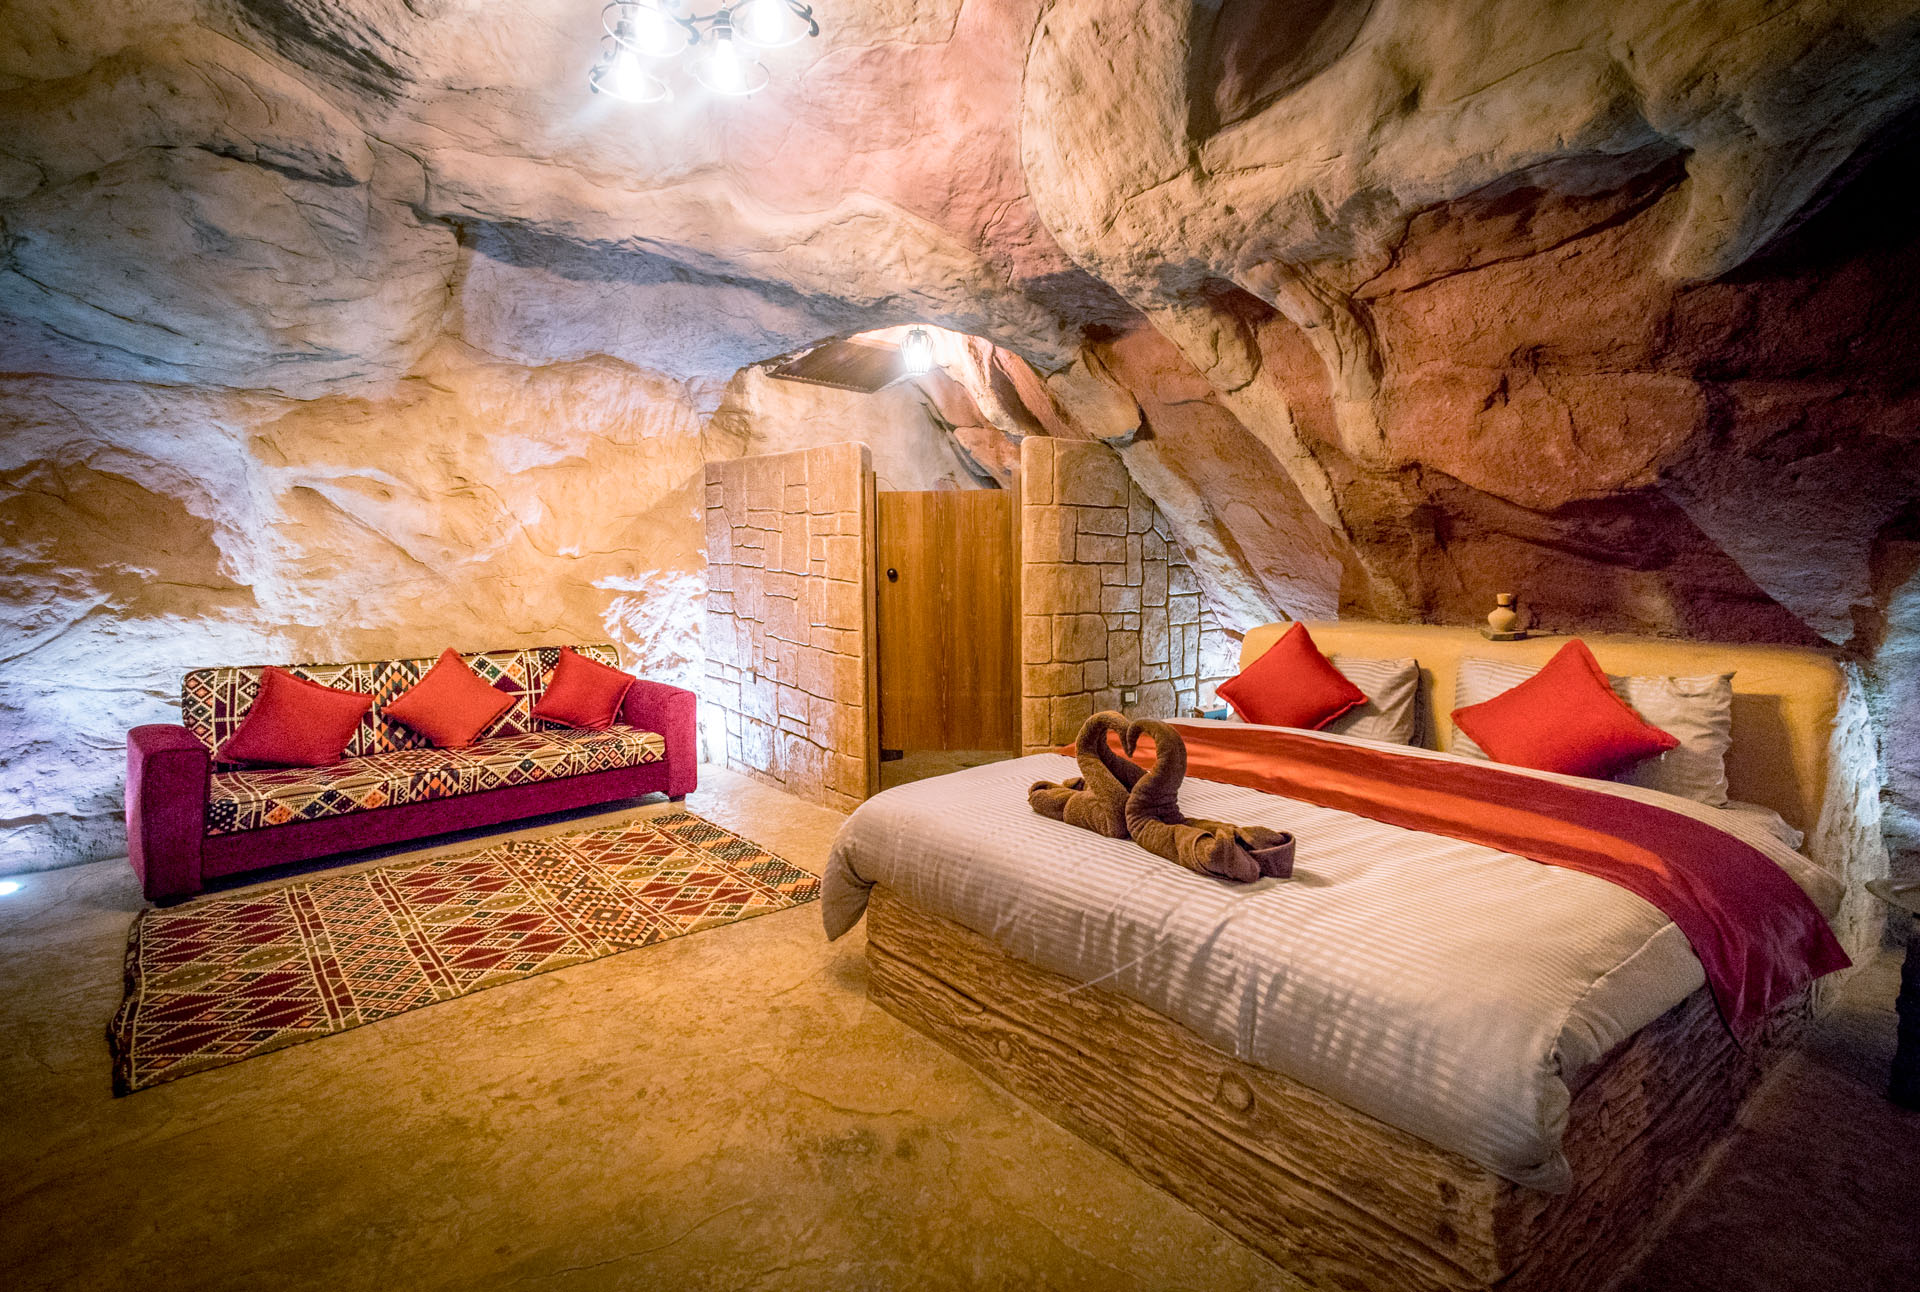 """Deluxe """"cave room"""" upgrade available"""